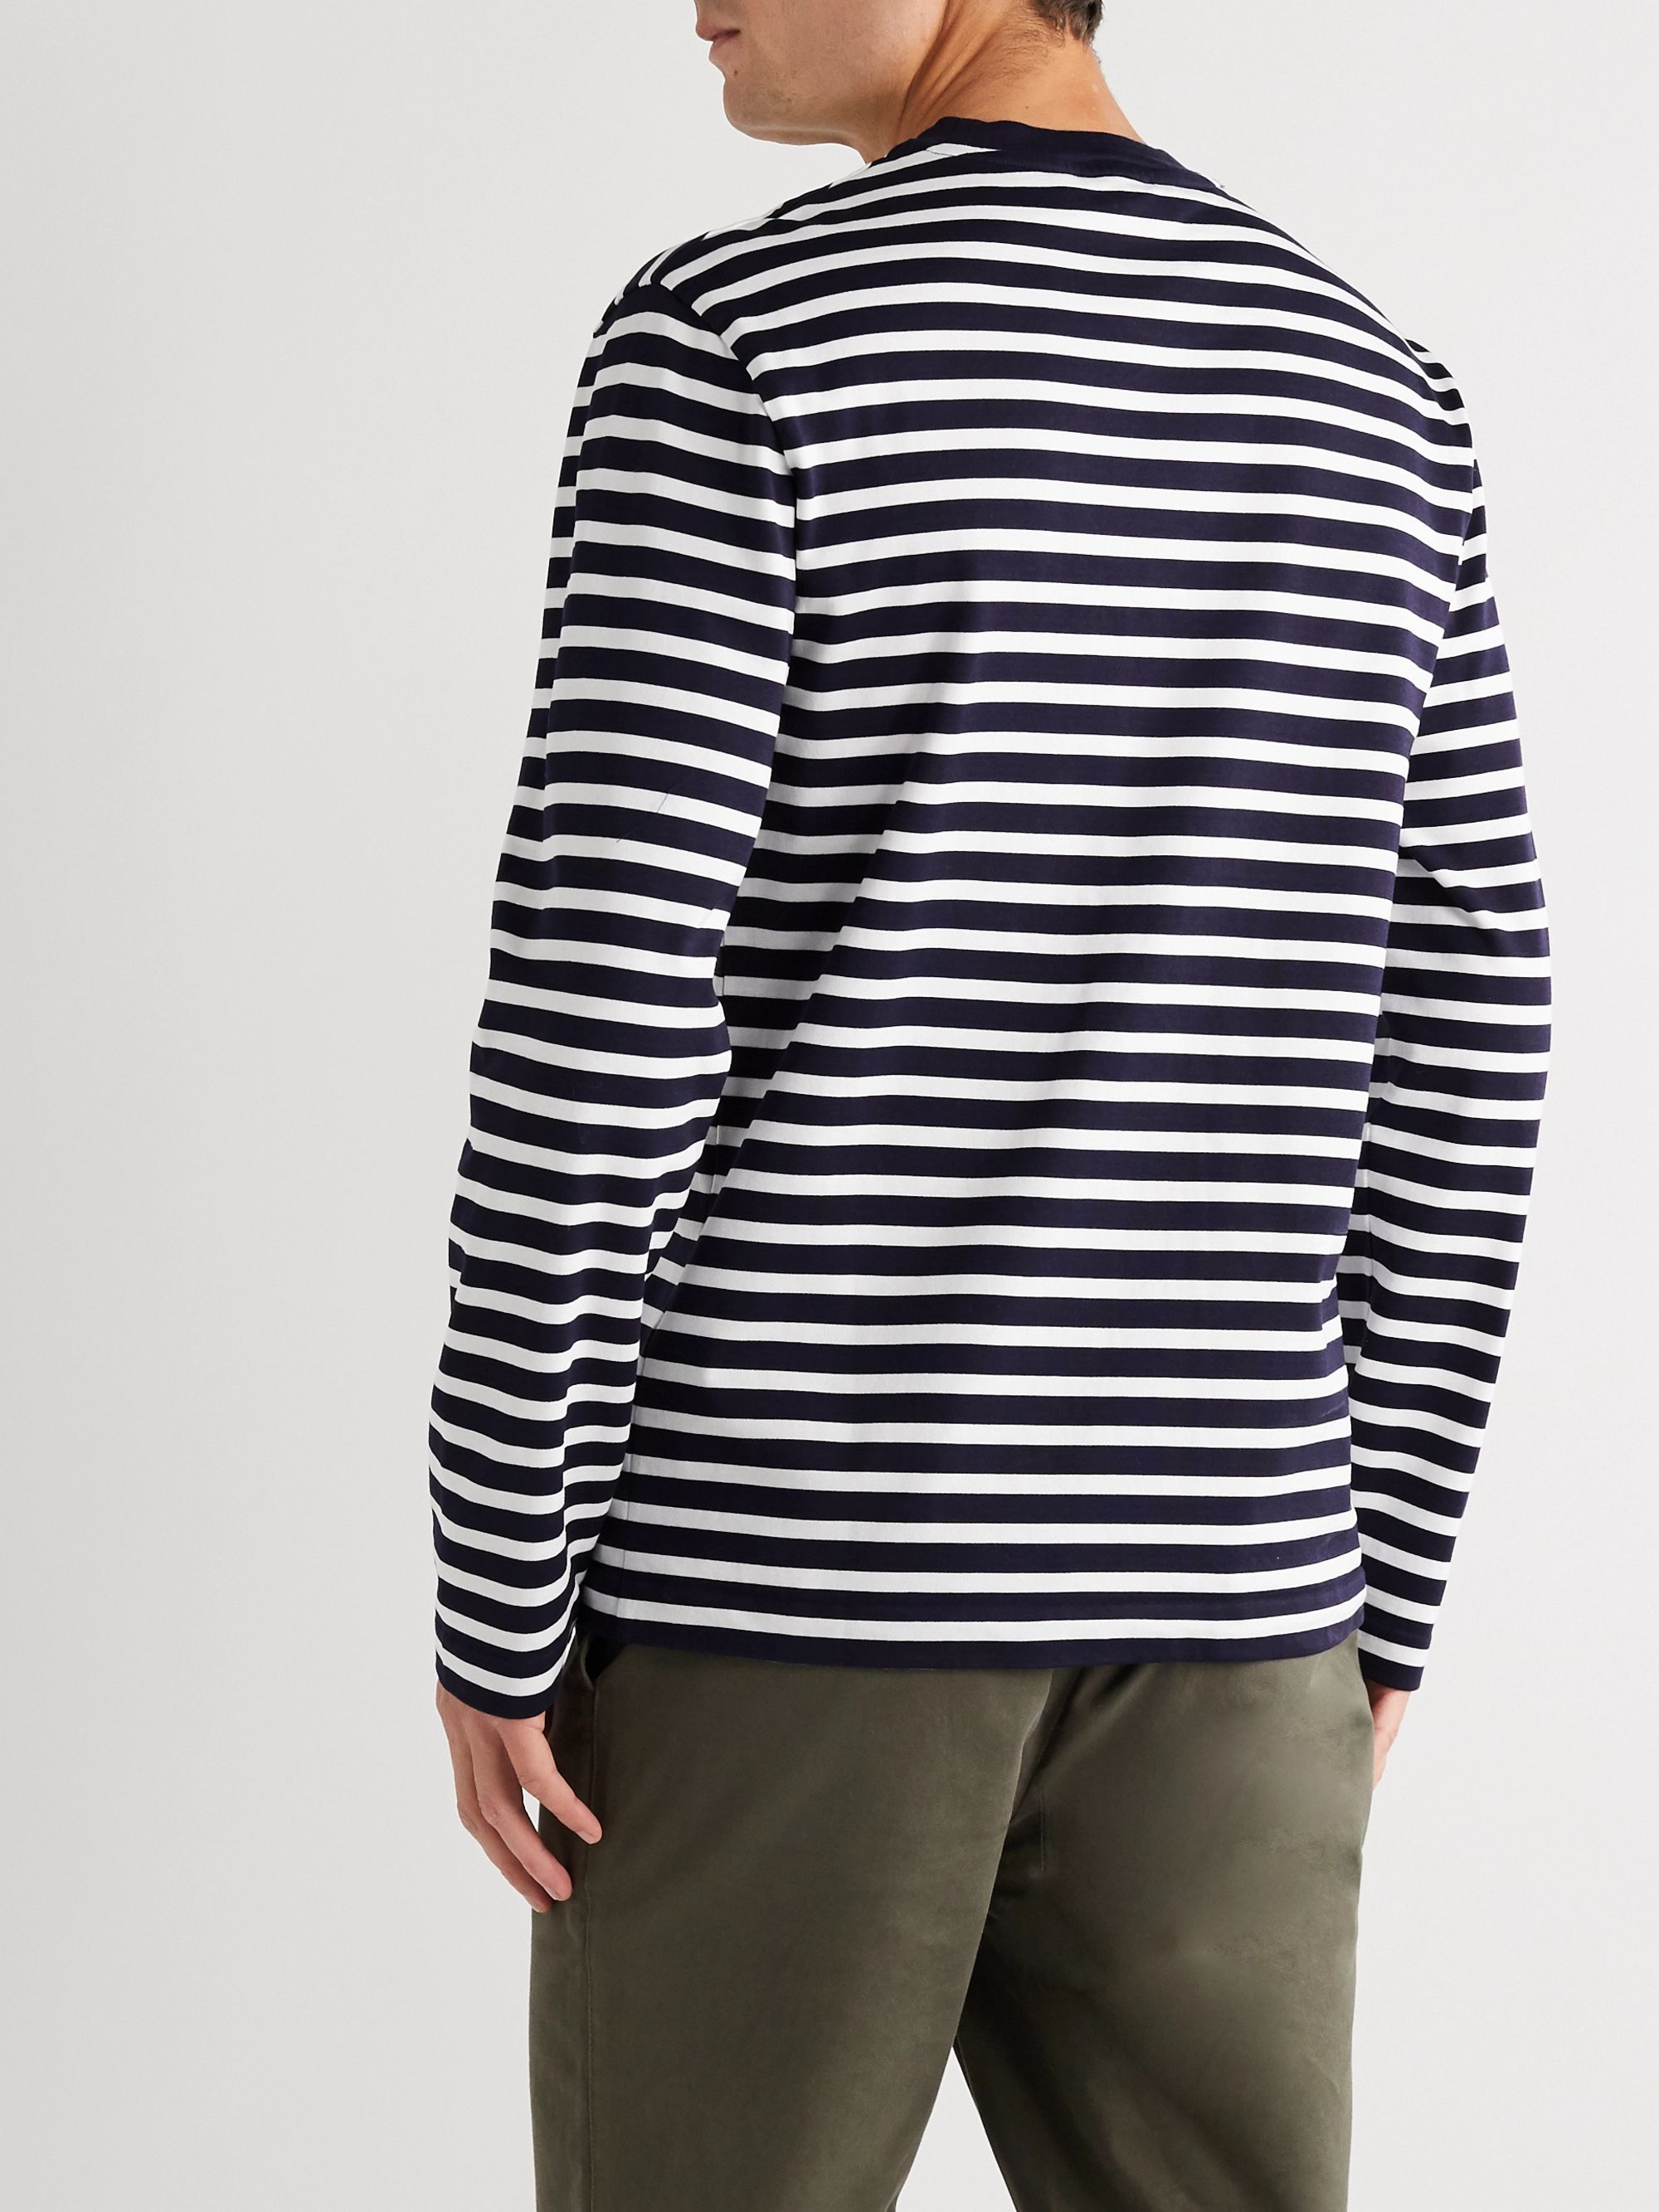 Maison Kitsuné Logo-Appliquéd Striped Cotton-Jersey T-Shirt